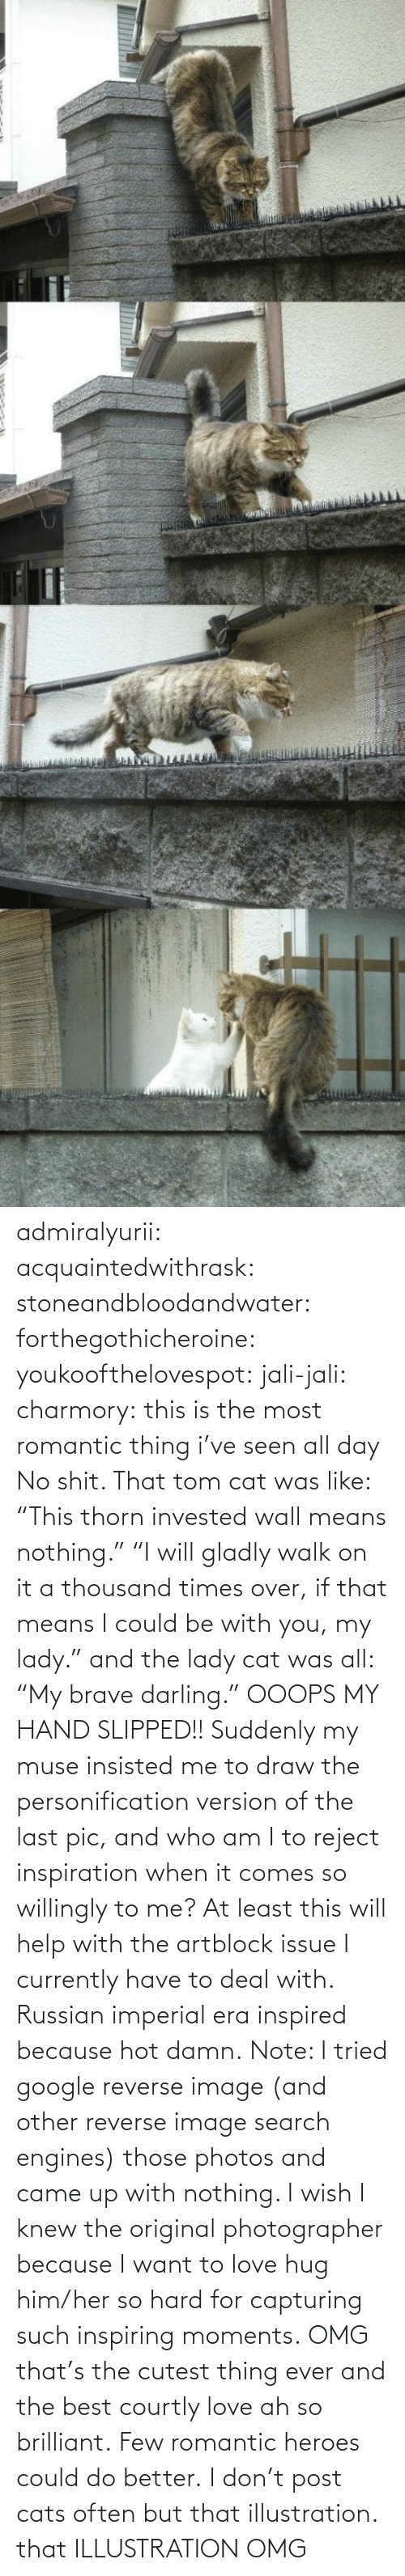 "photos: admiralyurii: acquaintedwithrask:  stoneandbloodandwater:  forthegothicheroine:  youkoofthelovespot:  jali-jali:  charmory:  this is the most romantic thing i've seen all day  No shit. That tom cat was like: ""This thorn invested wall means nothing."" ""I will gladly walk on it a thousand times over, if that means I could be with you, my lady."" and the lady cat was all: ""My brave darling."" OOOPS MY HAND SLIPPED!!  Suddenly my muse insisted me to draw the personification version of the last pic, and who am I to reject inspiration when it comes so willingly to me? At least this will help with the artblock issue I currently have to deal with. Russian imperial era inspired because hot damn. Note: I tried google reverse image (and other reverse image search engines) those photos and came up with nothing. I wish I knew the original photographer because I want to love hug him/her so hard for capturing such inspiring moments.  OMG that's the cutest thing ever and the best courtly love ah so brilliant.  Few romantic heroes could do better.  I don't post cats often but that illustration.  that ILLUSTRATION    OMG"